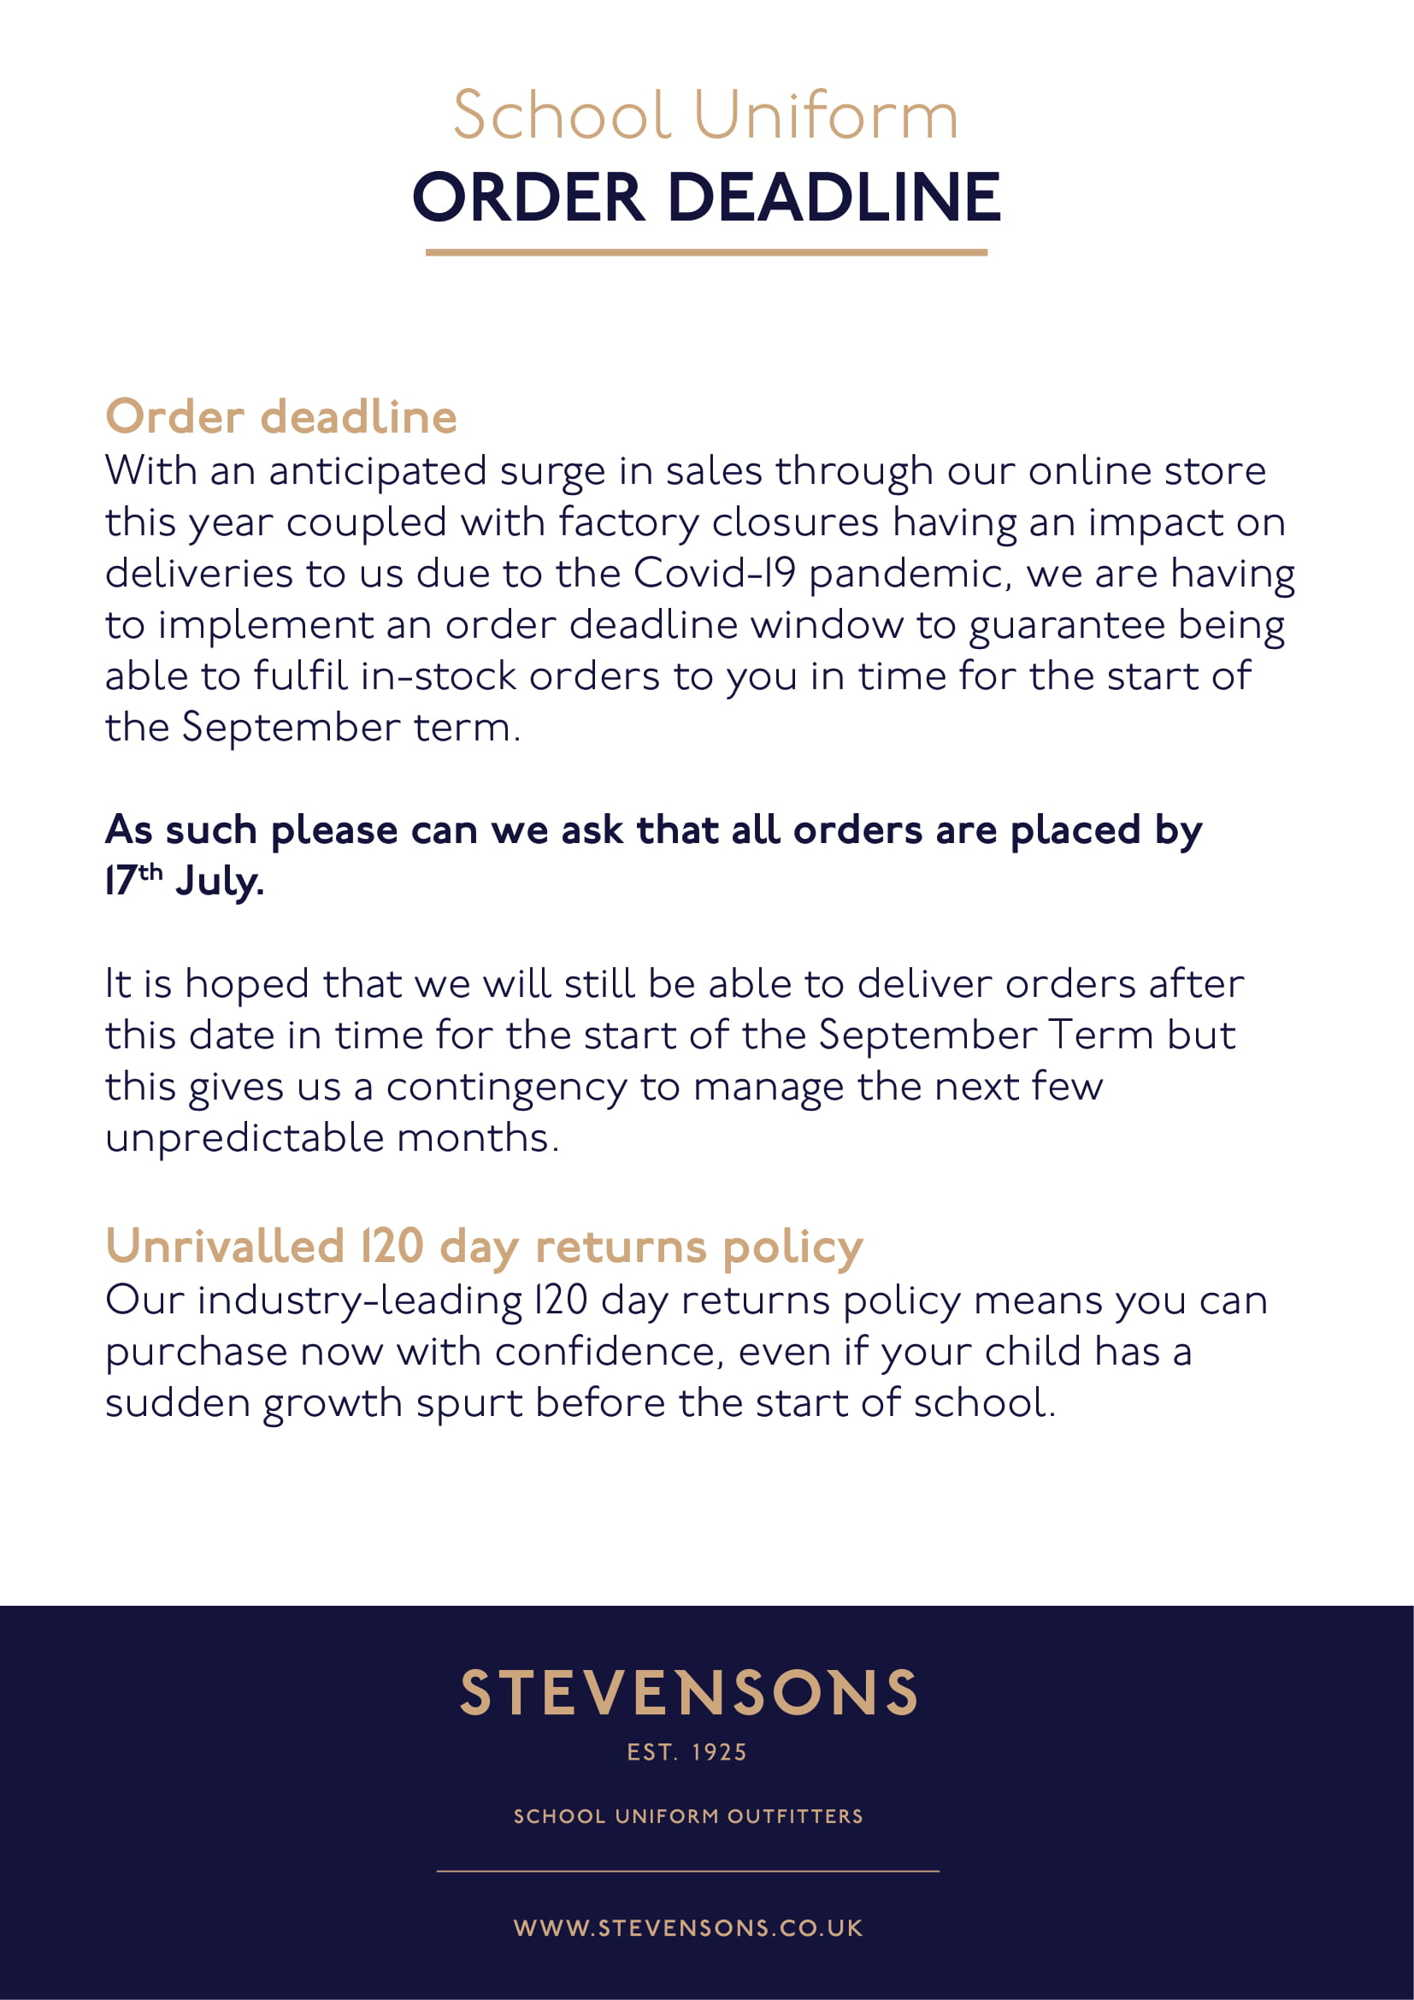 Stevensons School Uniform  Order Deadline (3) 1